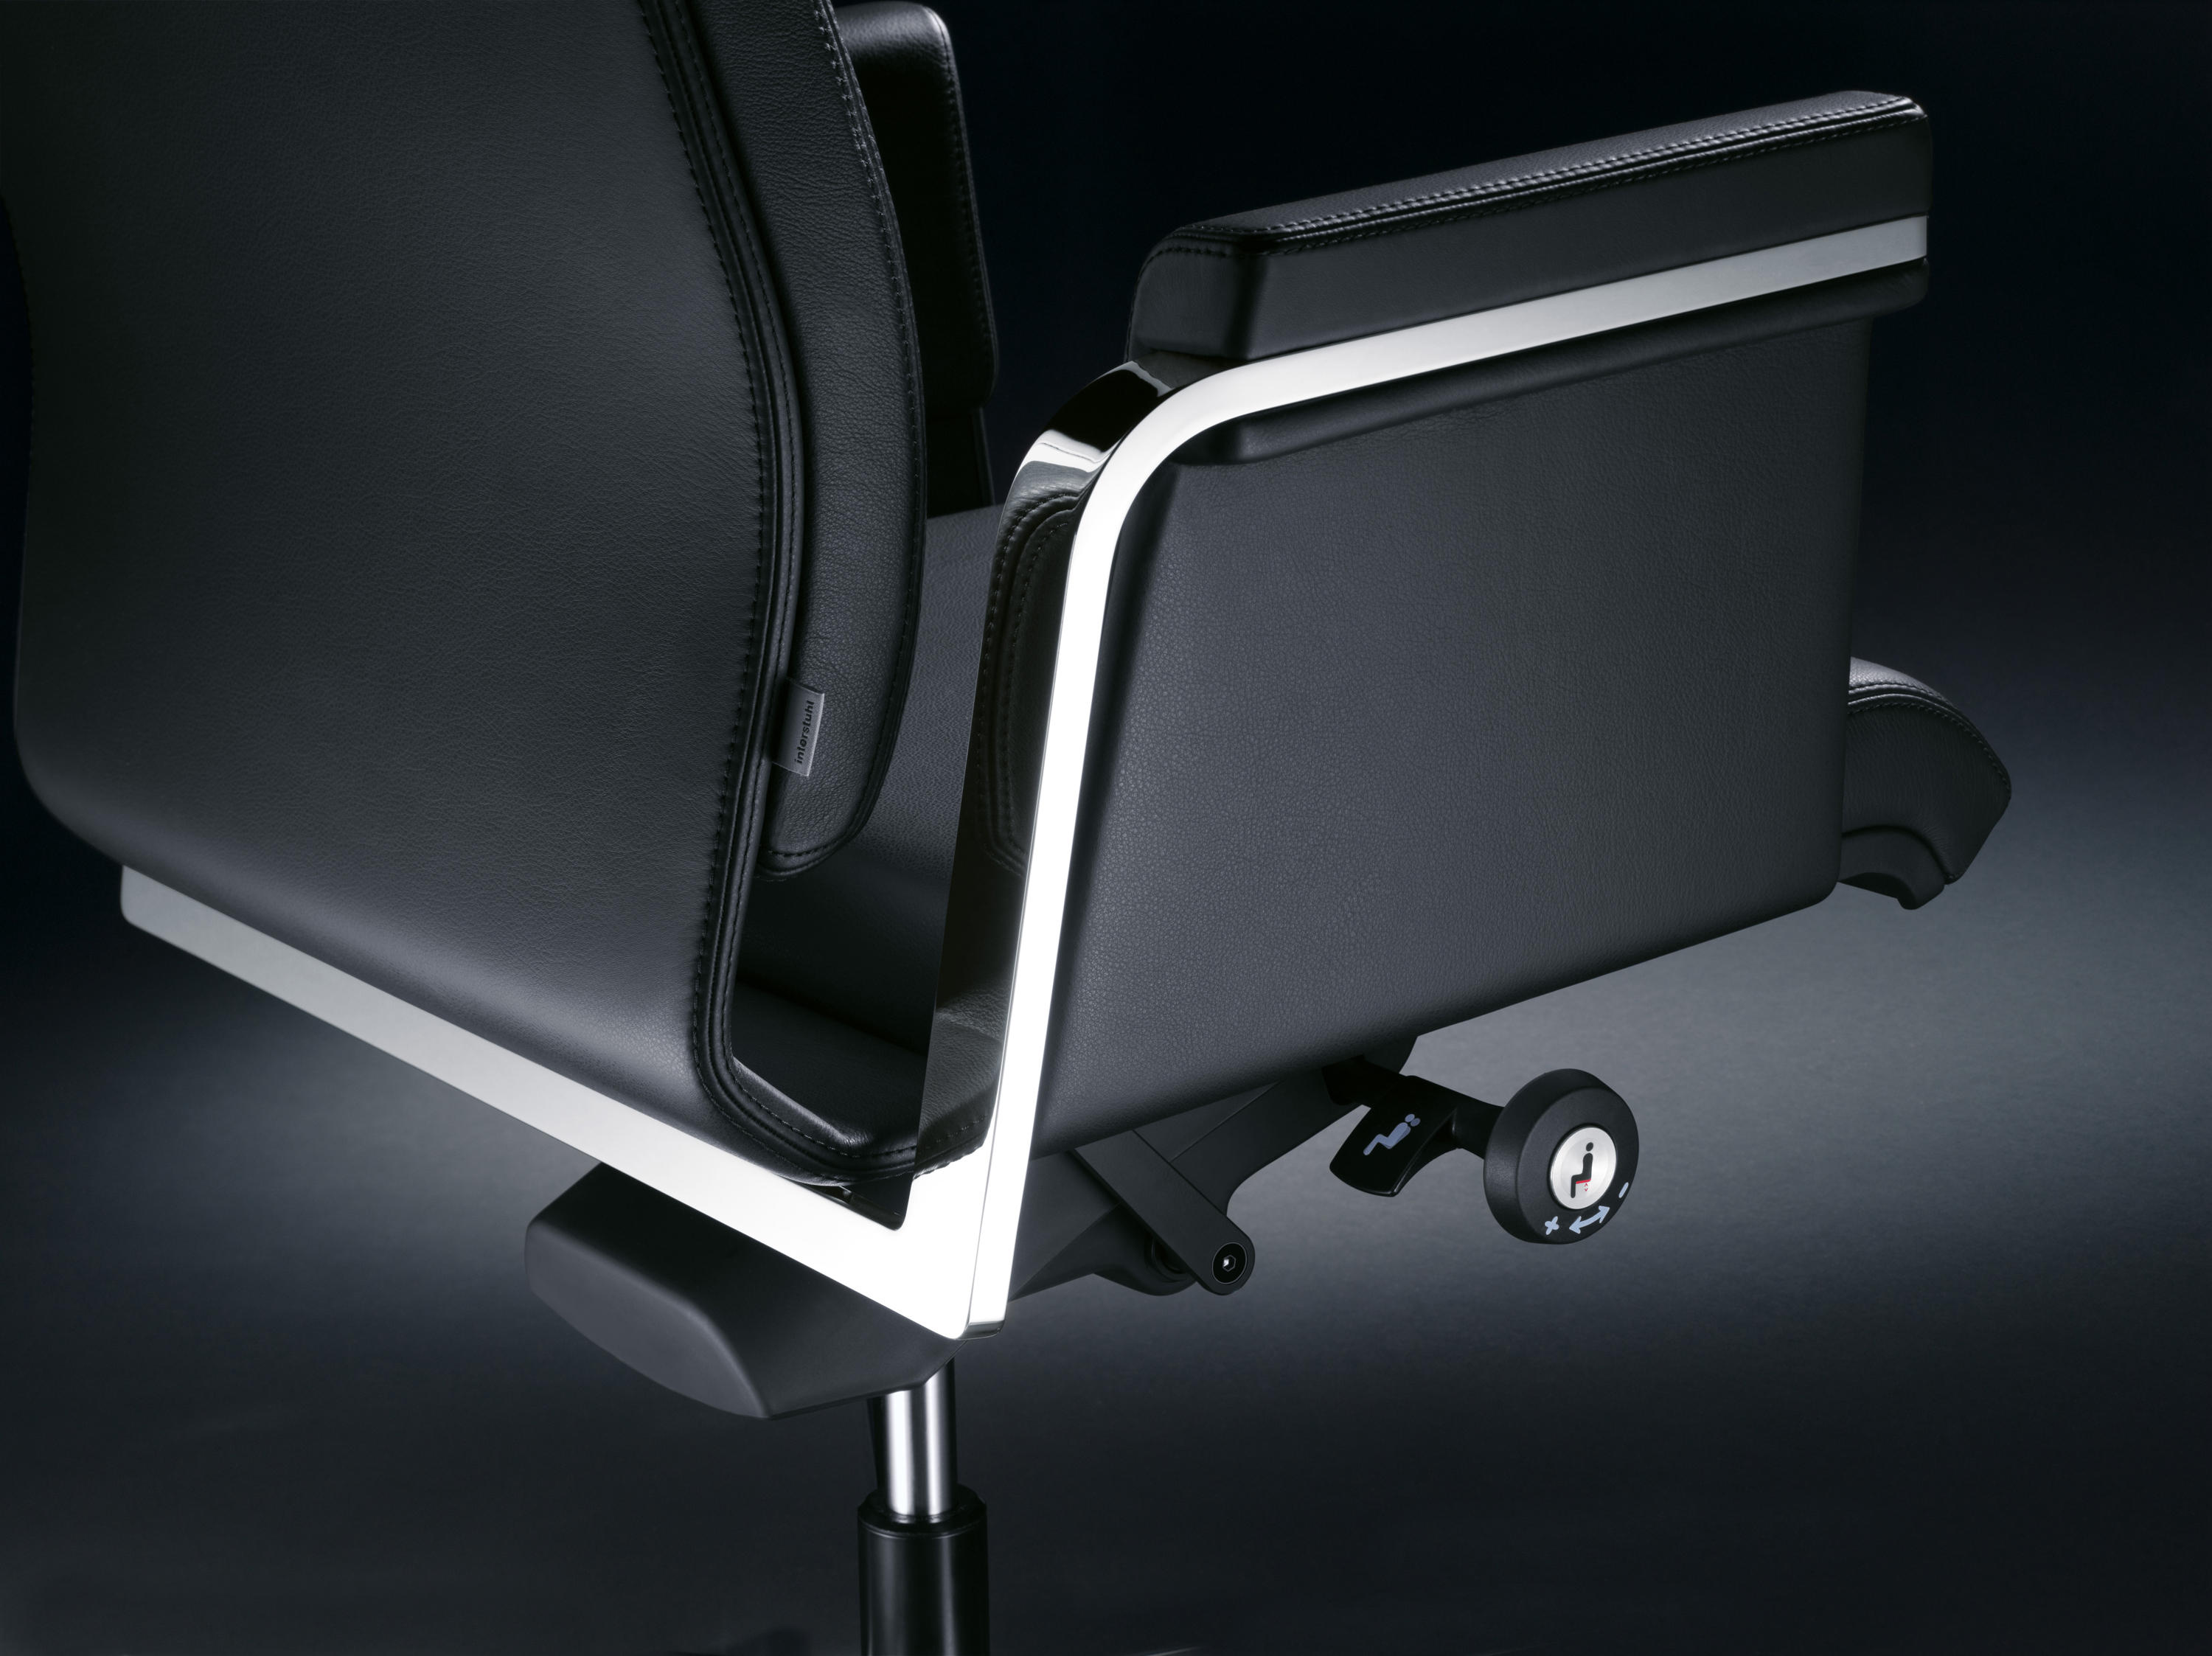 Axos 160a conference chairs from interstuhl b rom bel for Buero moebel